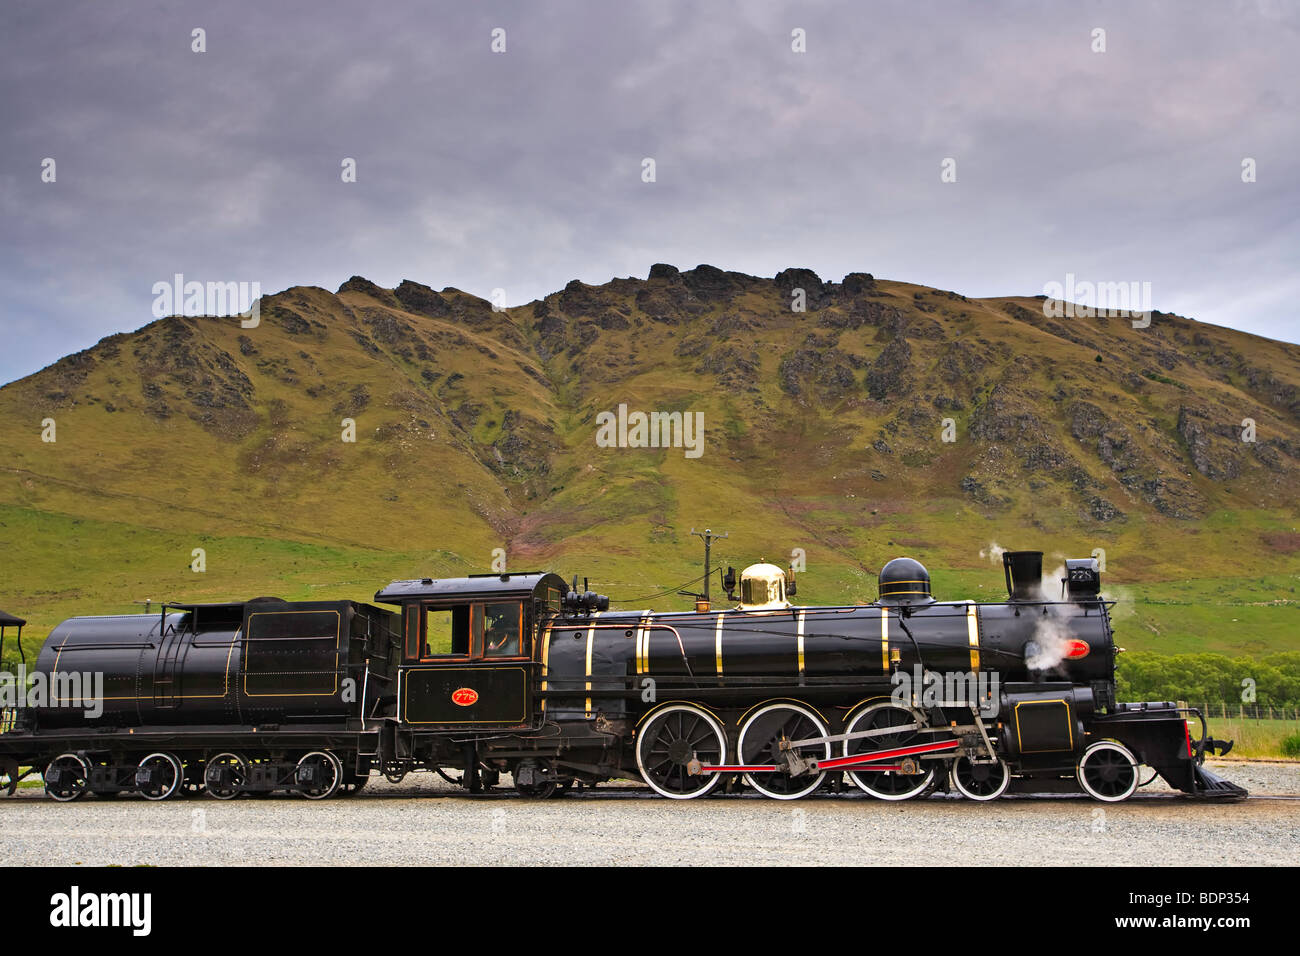 Kingston Flyer, a steam train built in 1925, at the Fairlight Station in Central Otago, South Island, New Zealand. Stock Photo